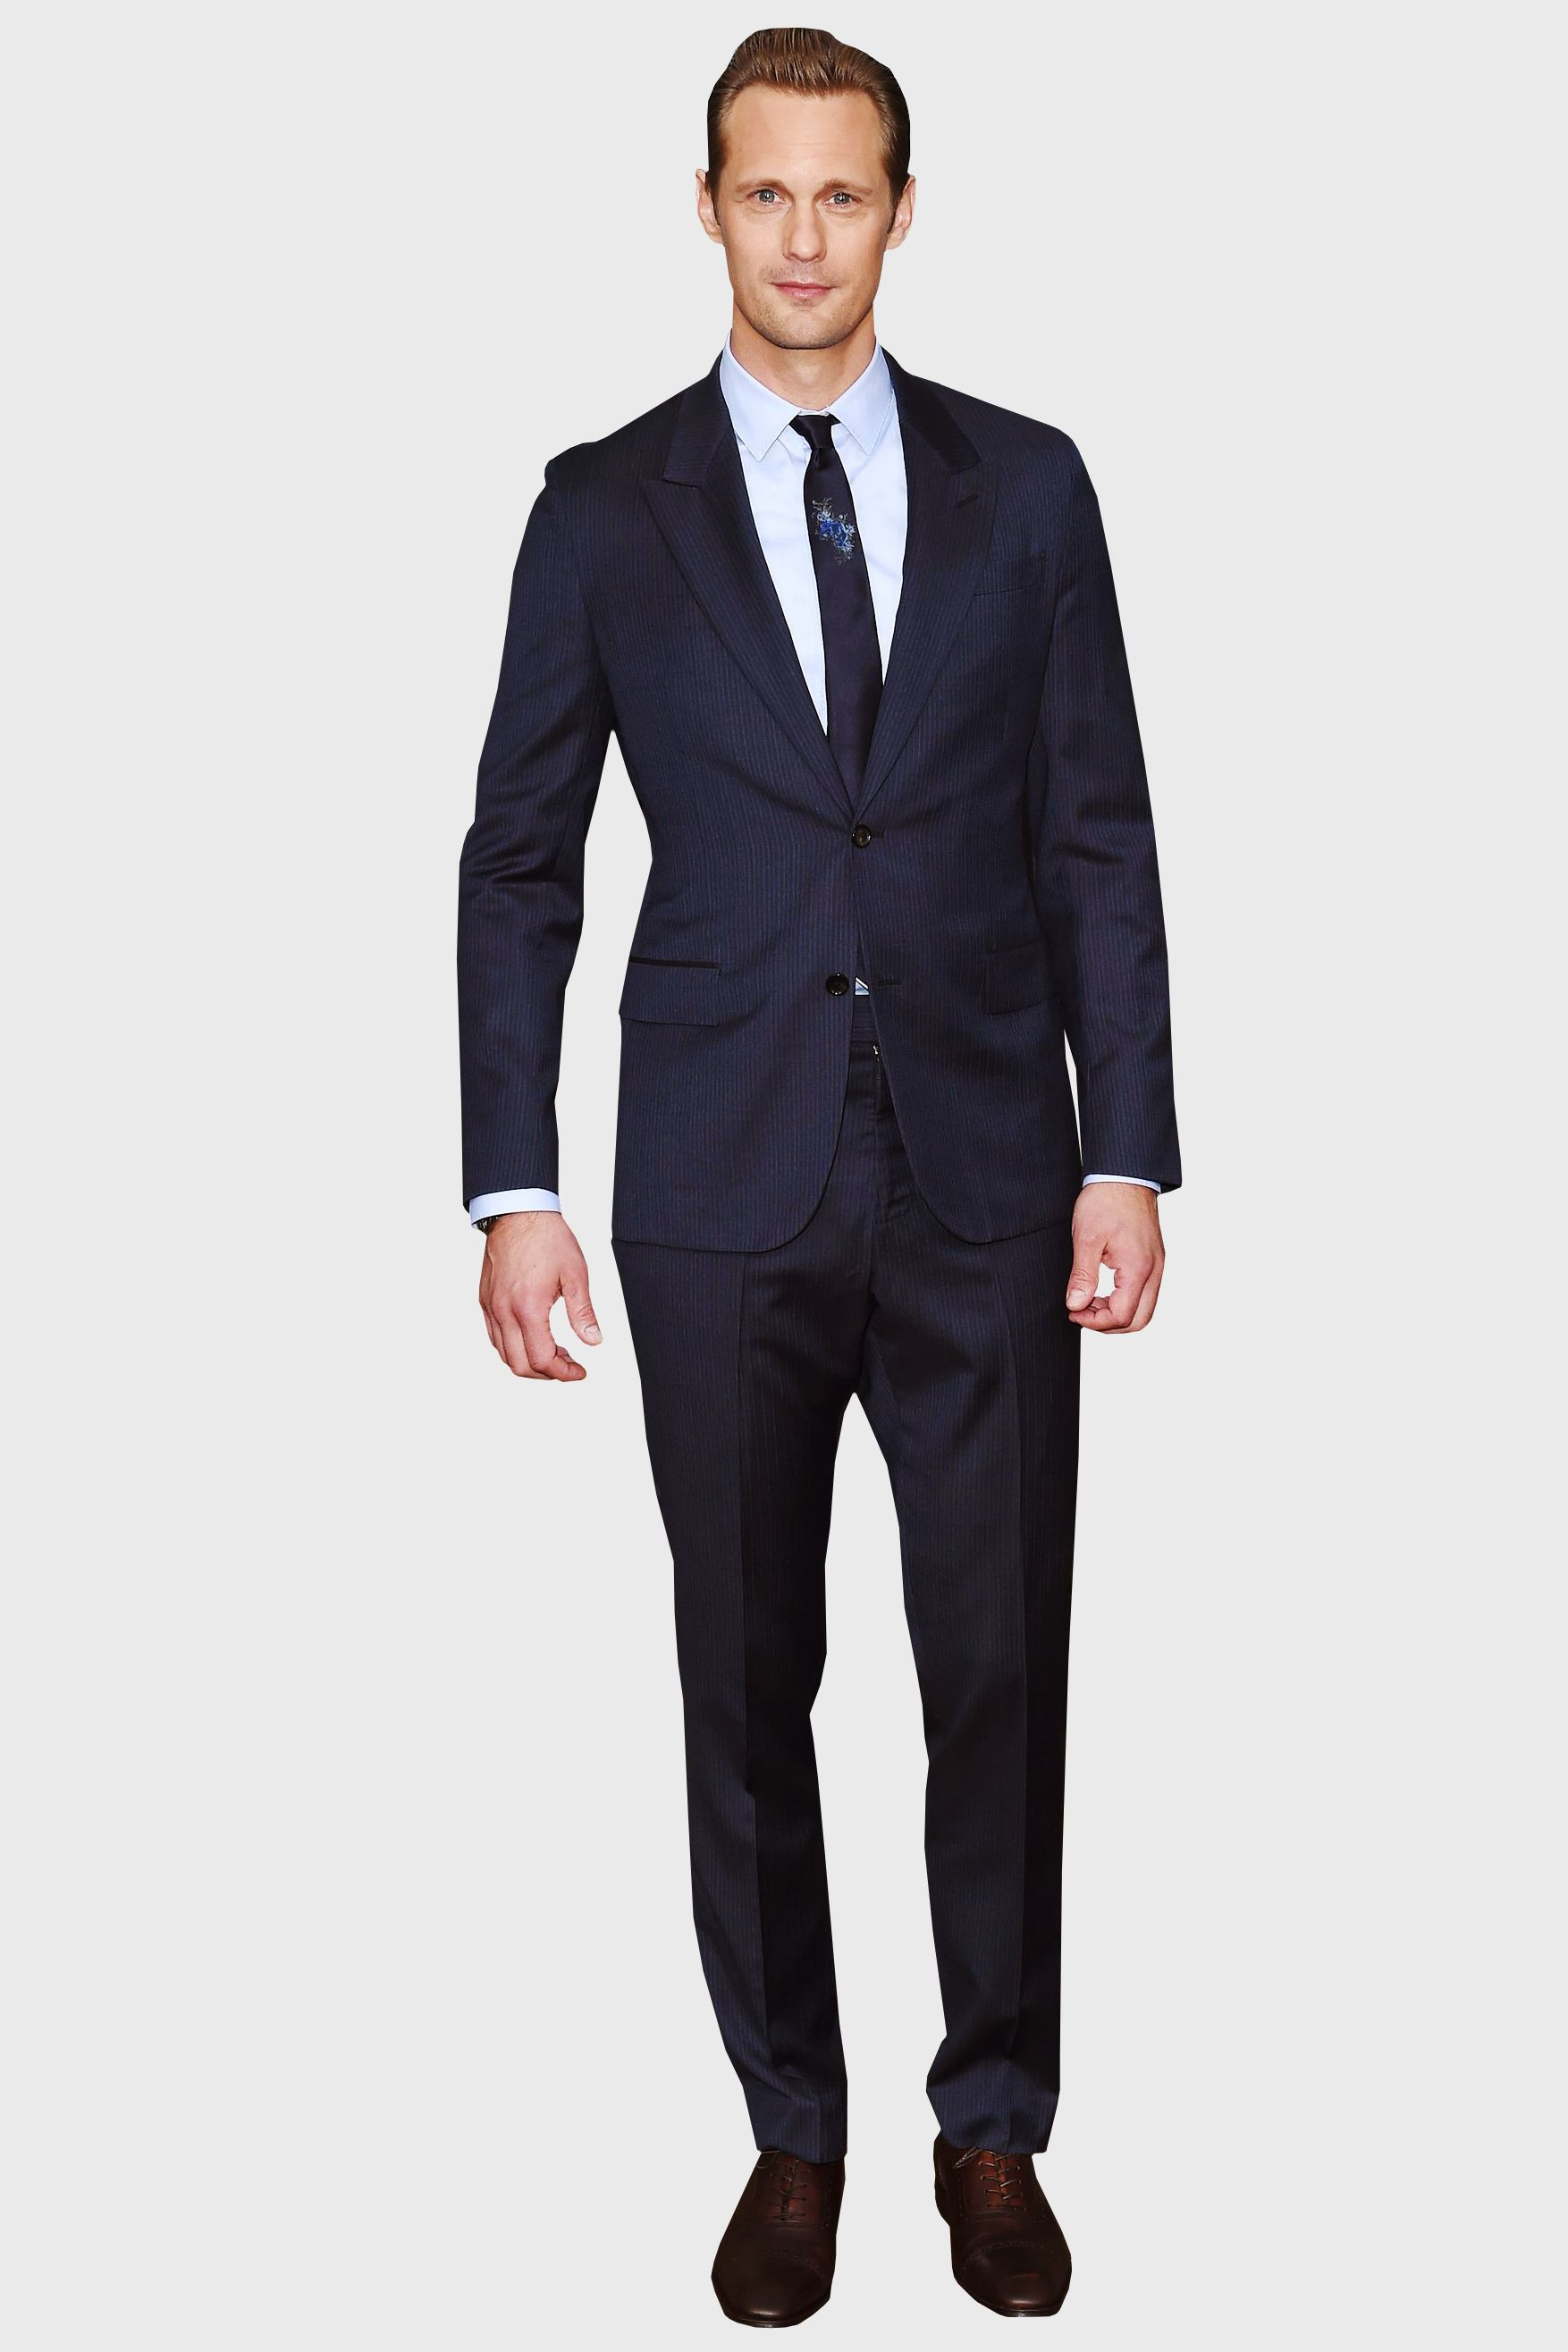 Wedding Dress Codes For Men What To Wear To A Wedding